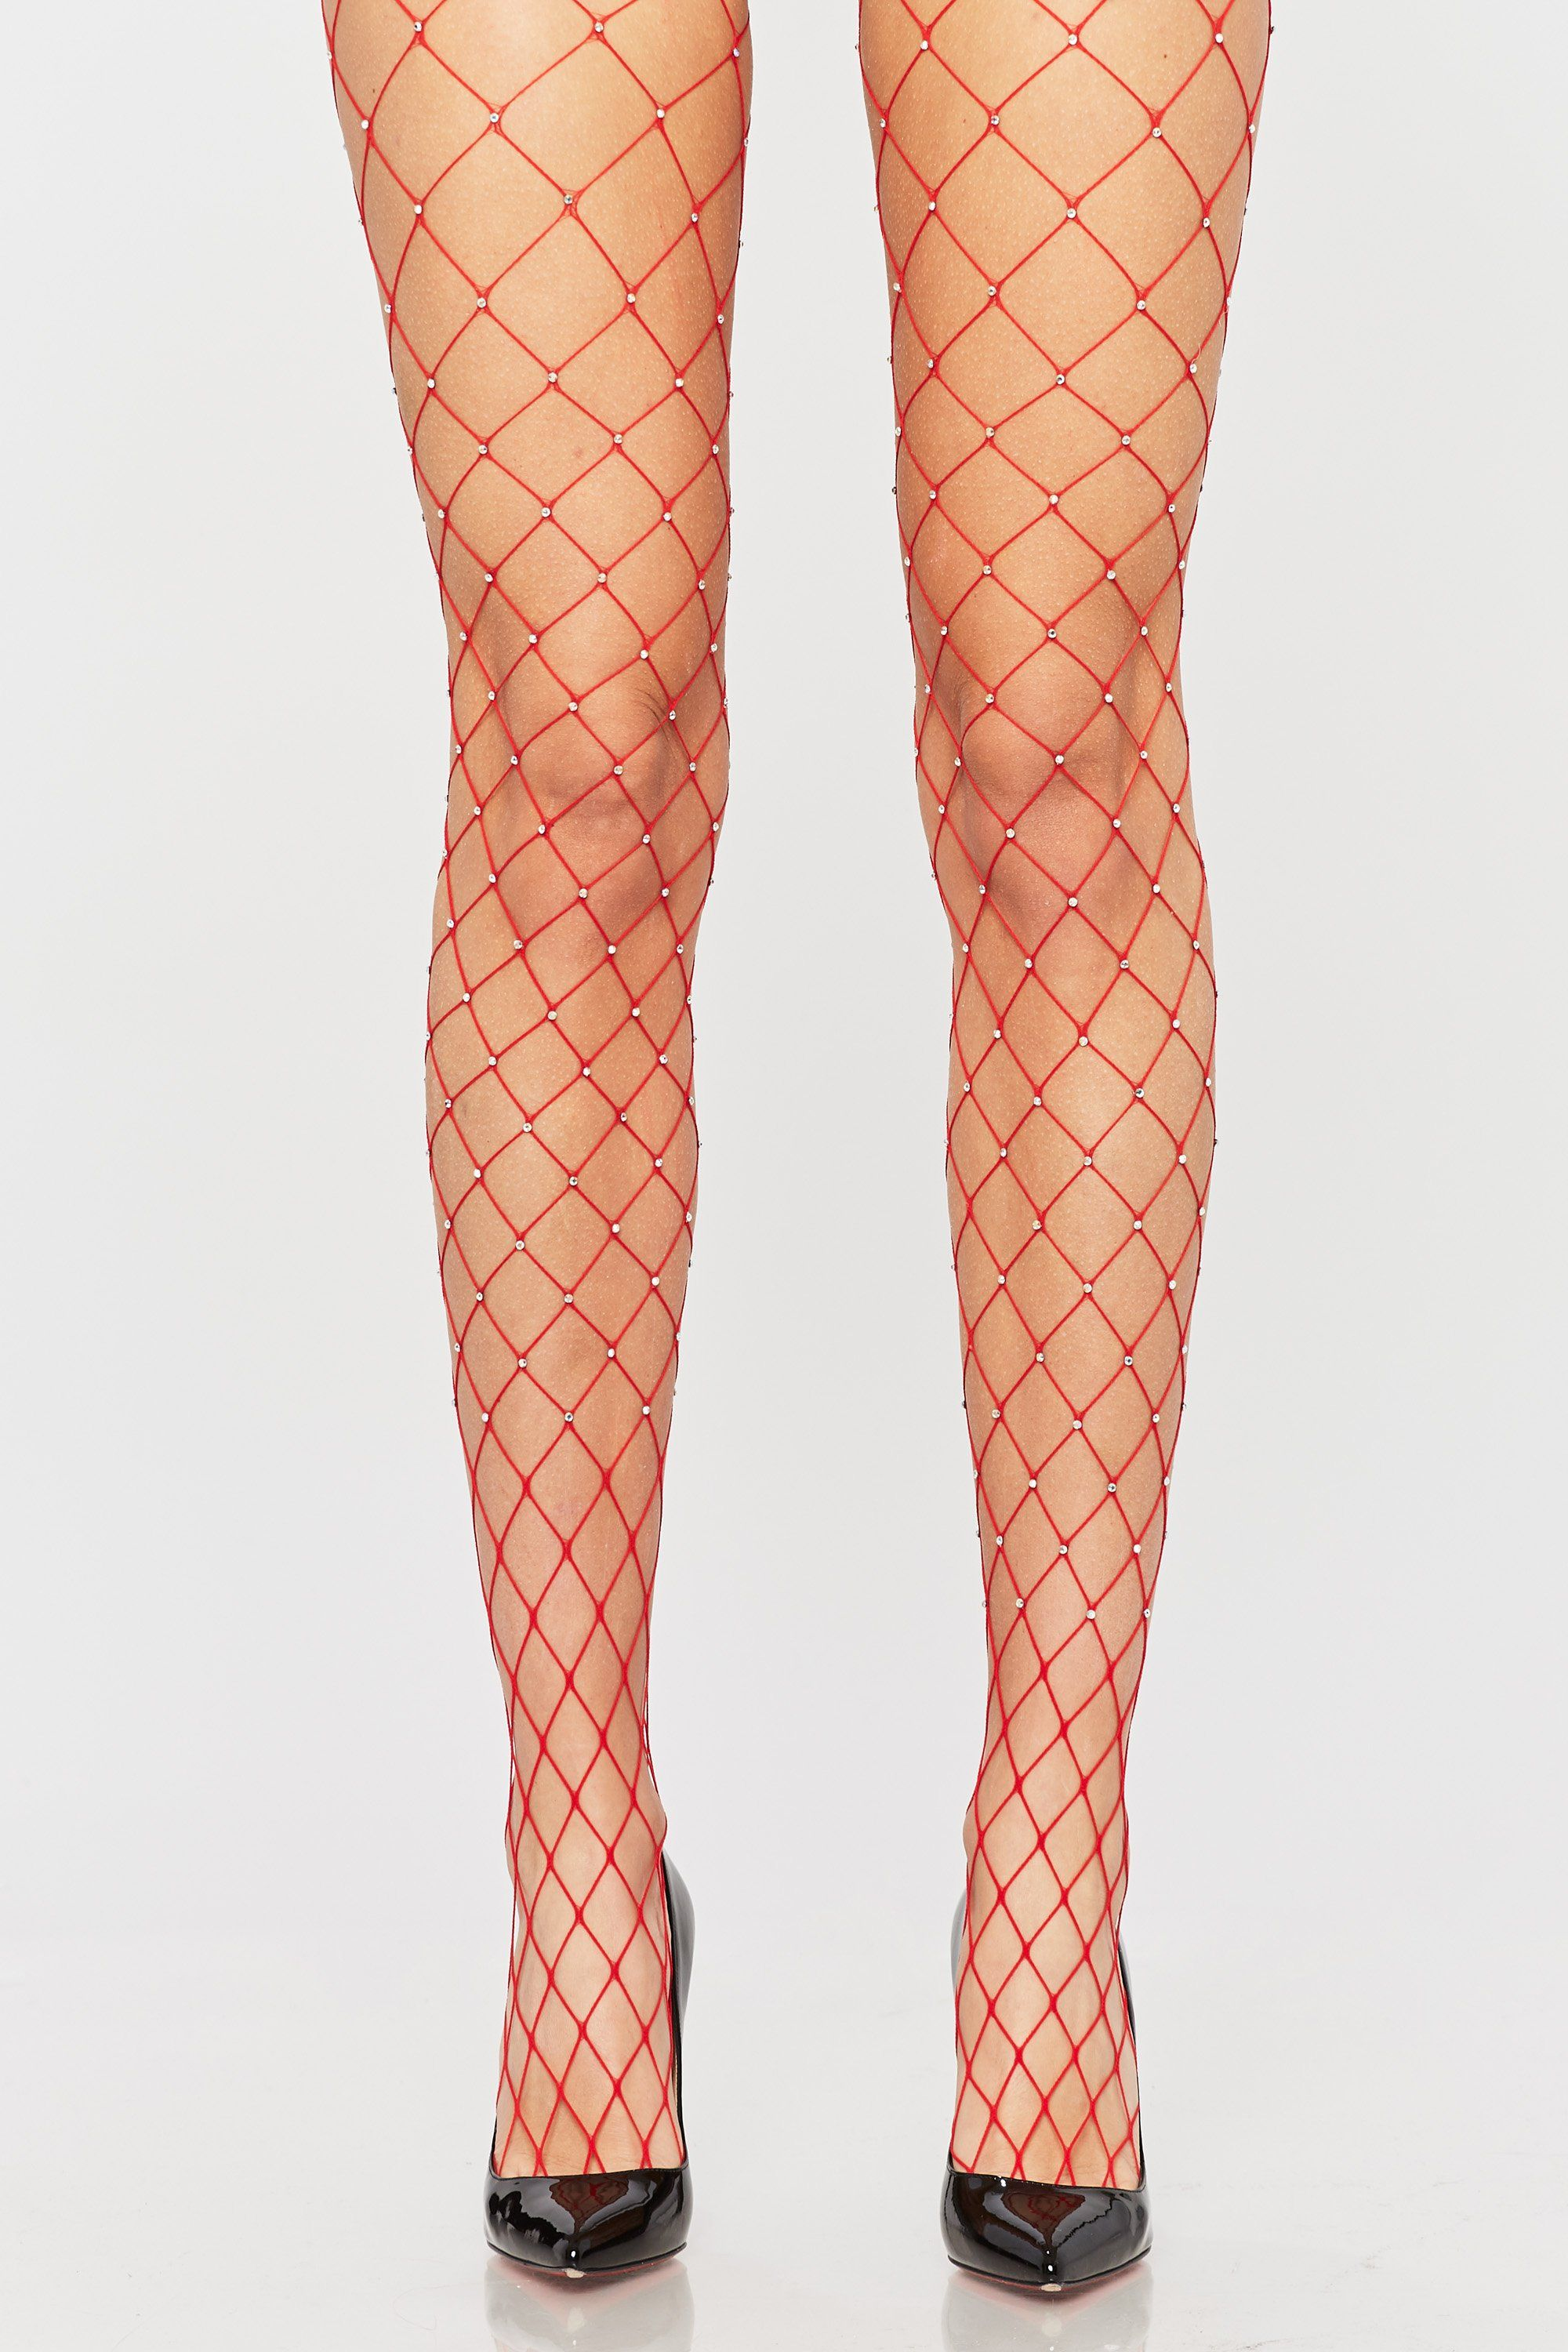 788ddb4f9 Bewitched Fishnet Tights